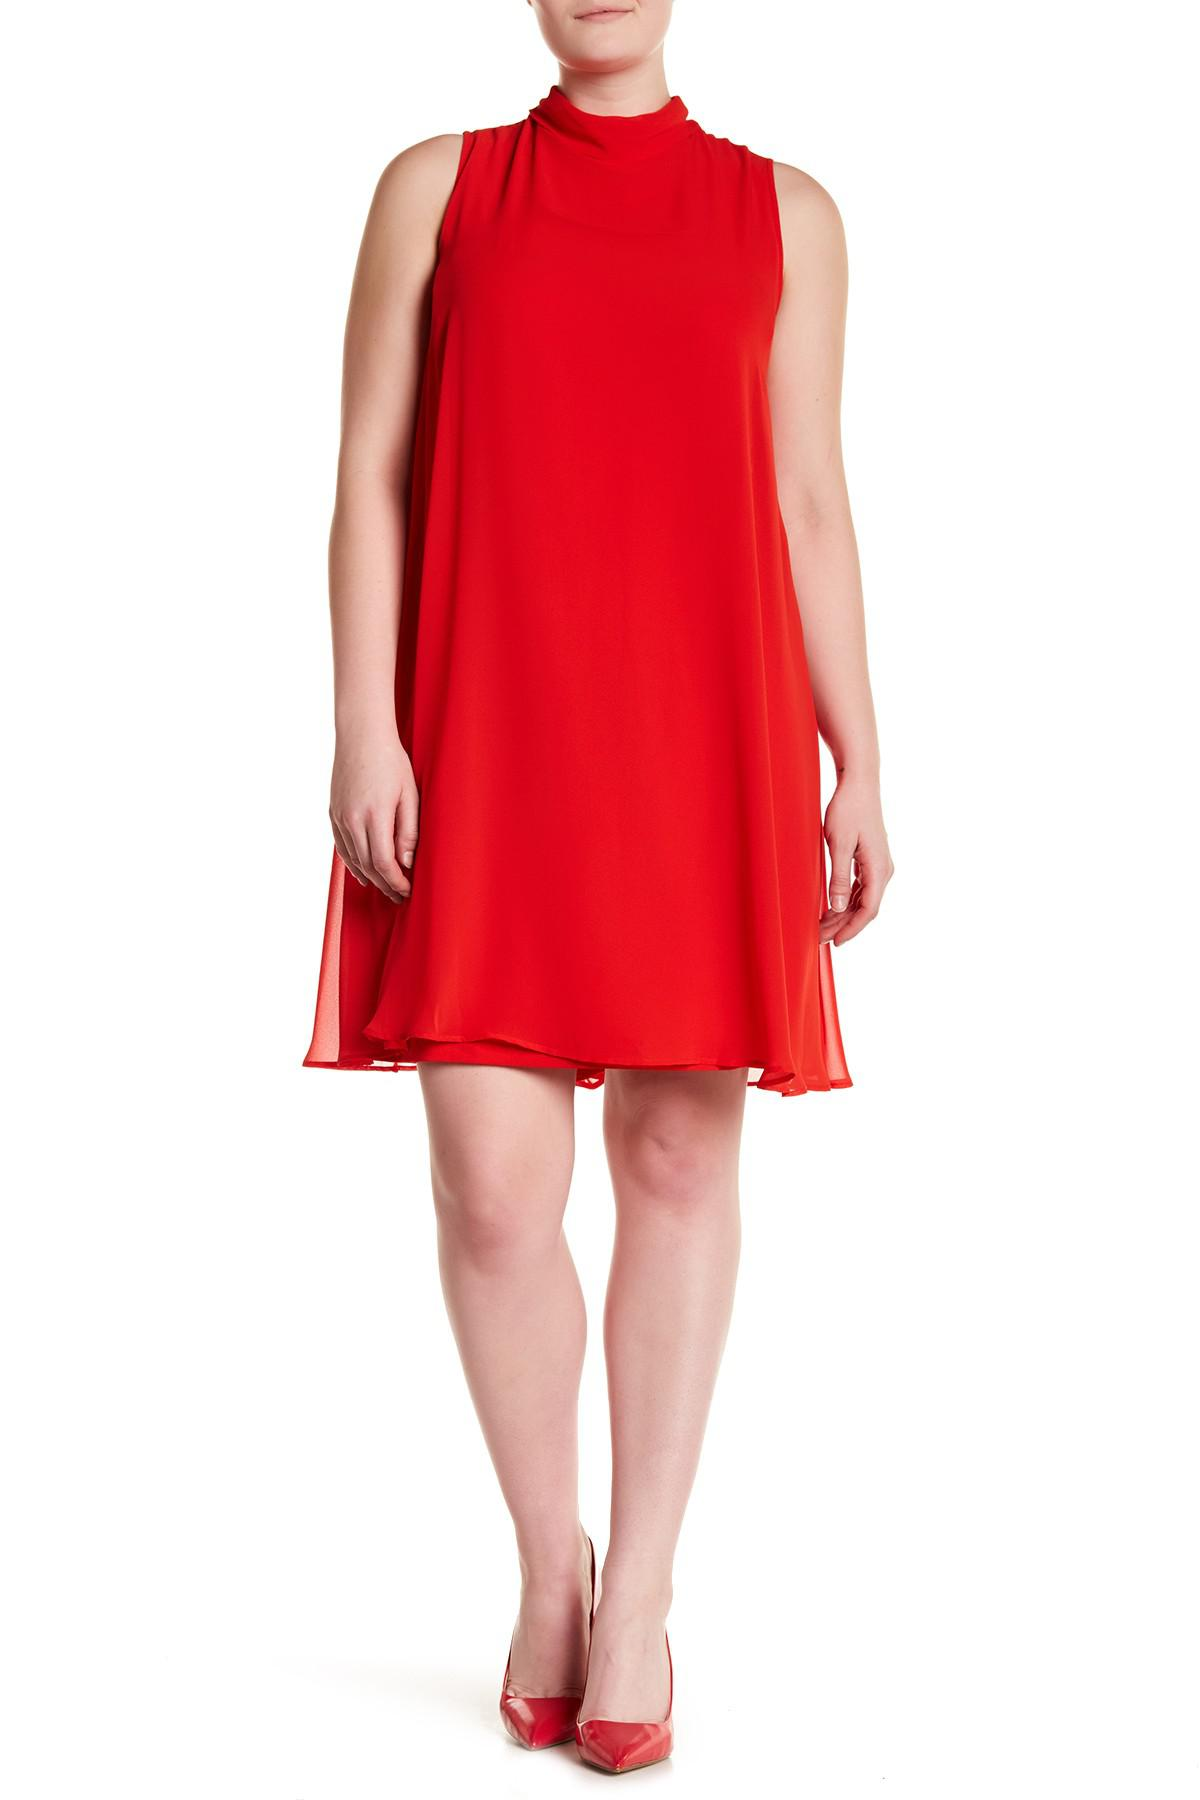 66462e6f5f1 Lyst - Sharagano Mock Neck Chiffon Overlay Dress (plus Size) in Red